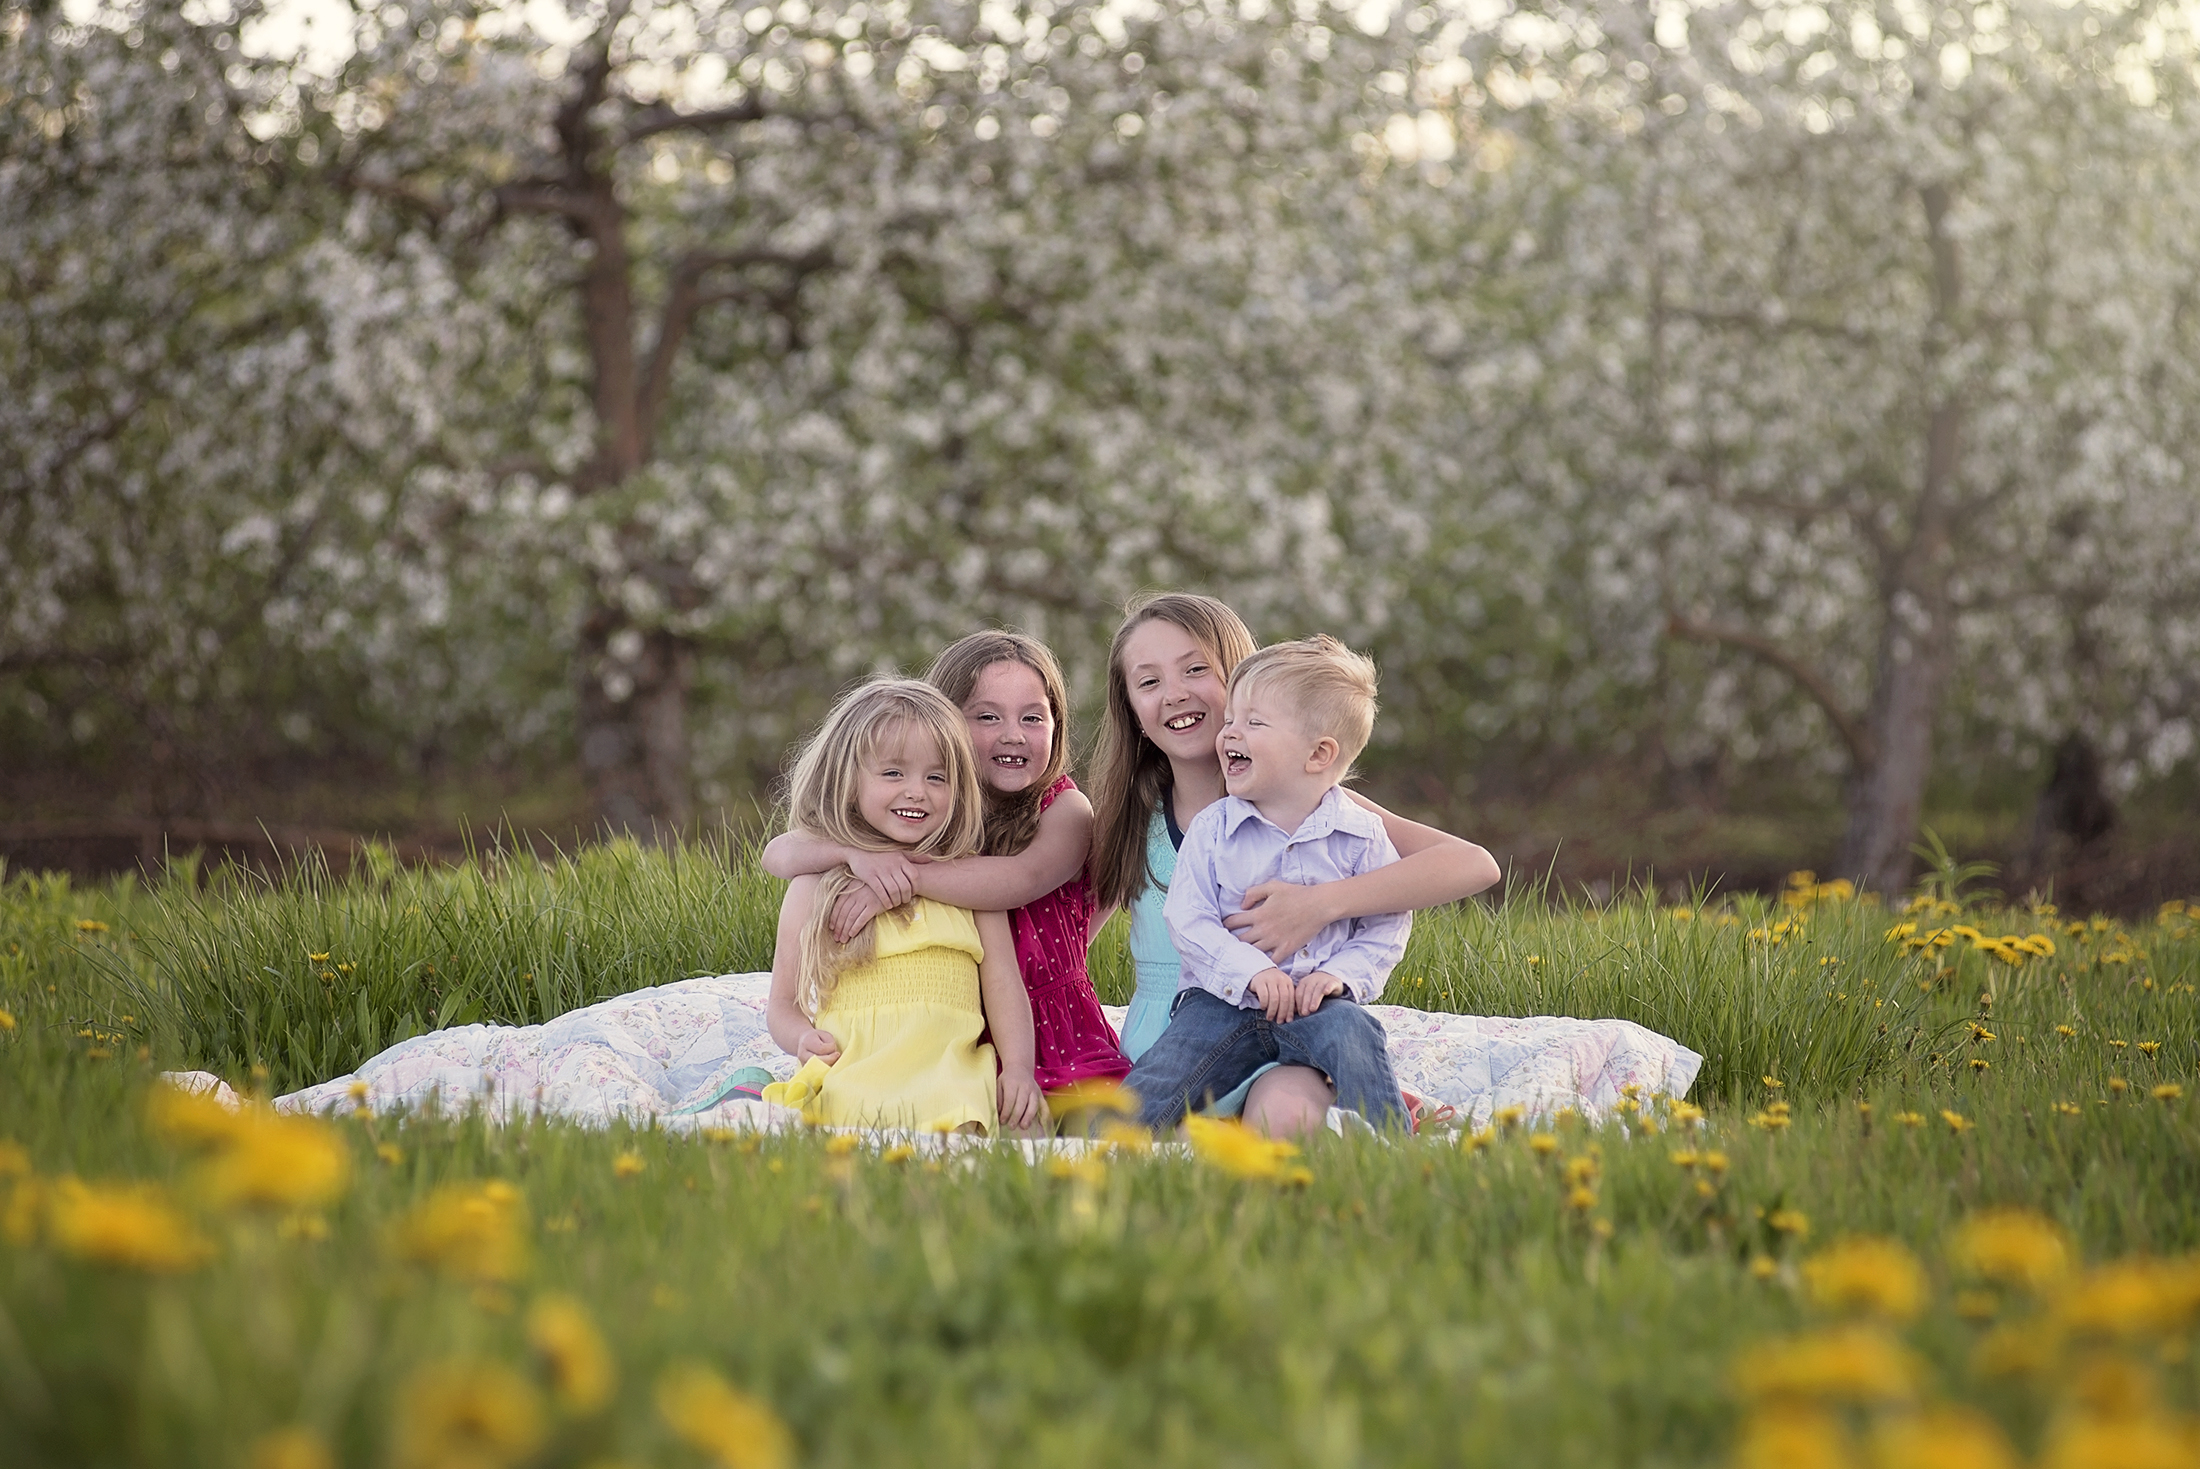 Outdoor Family Portraits taken in Sterling, MA spring apple orchards.